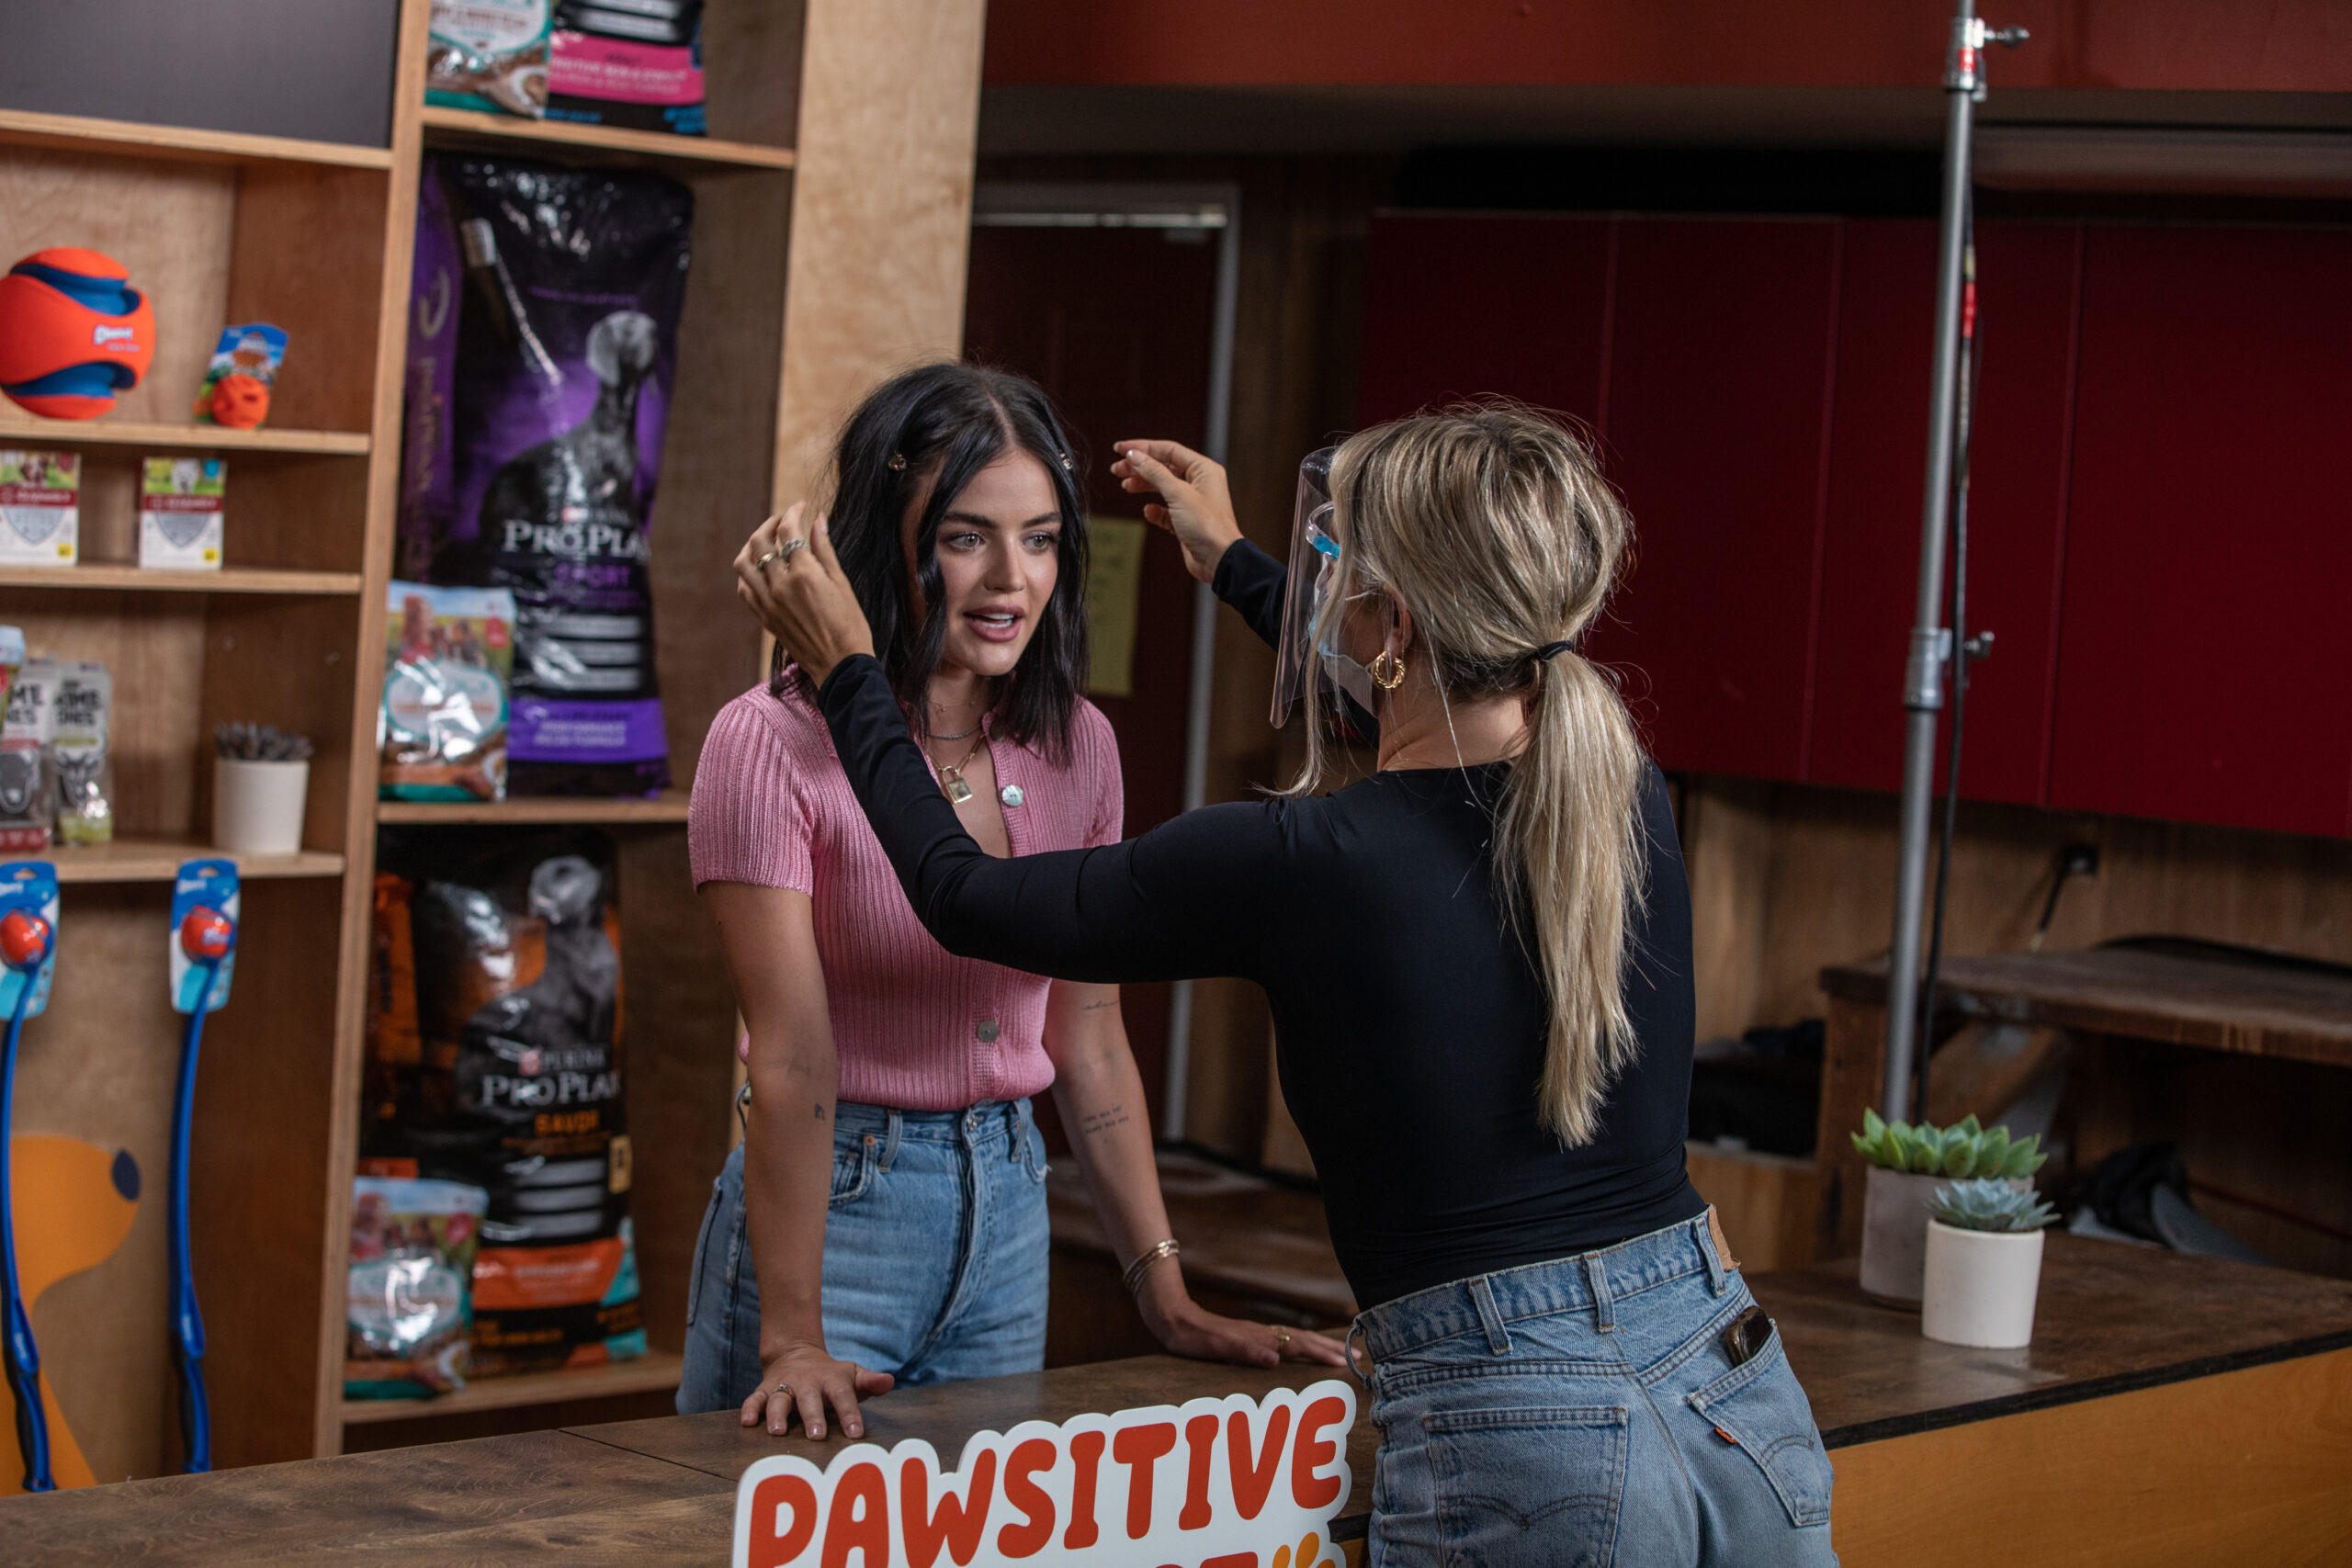 lucy hale with makeup artist during amazon pets event production